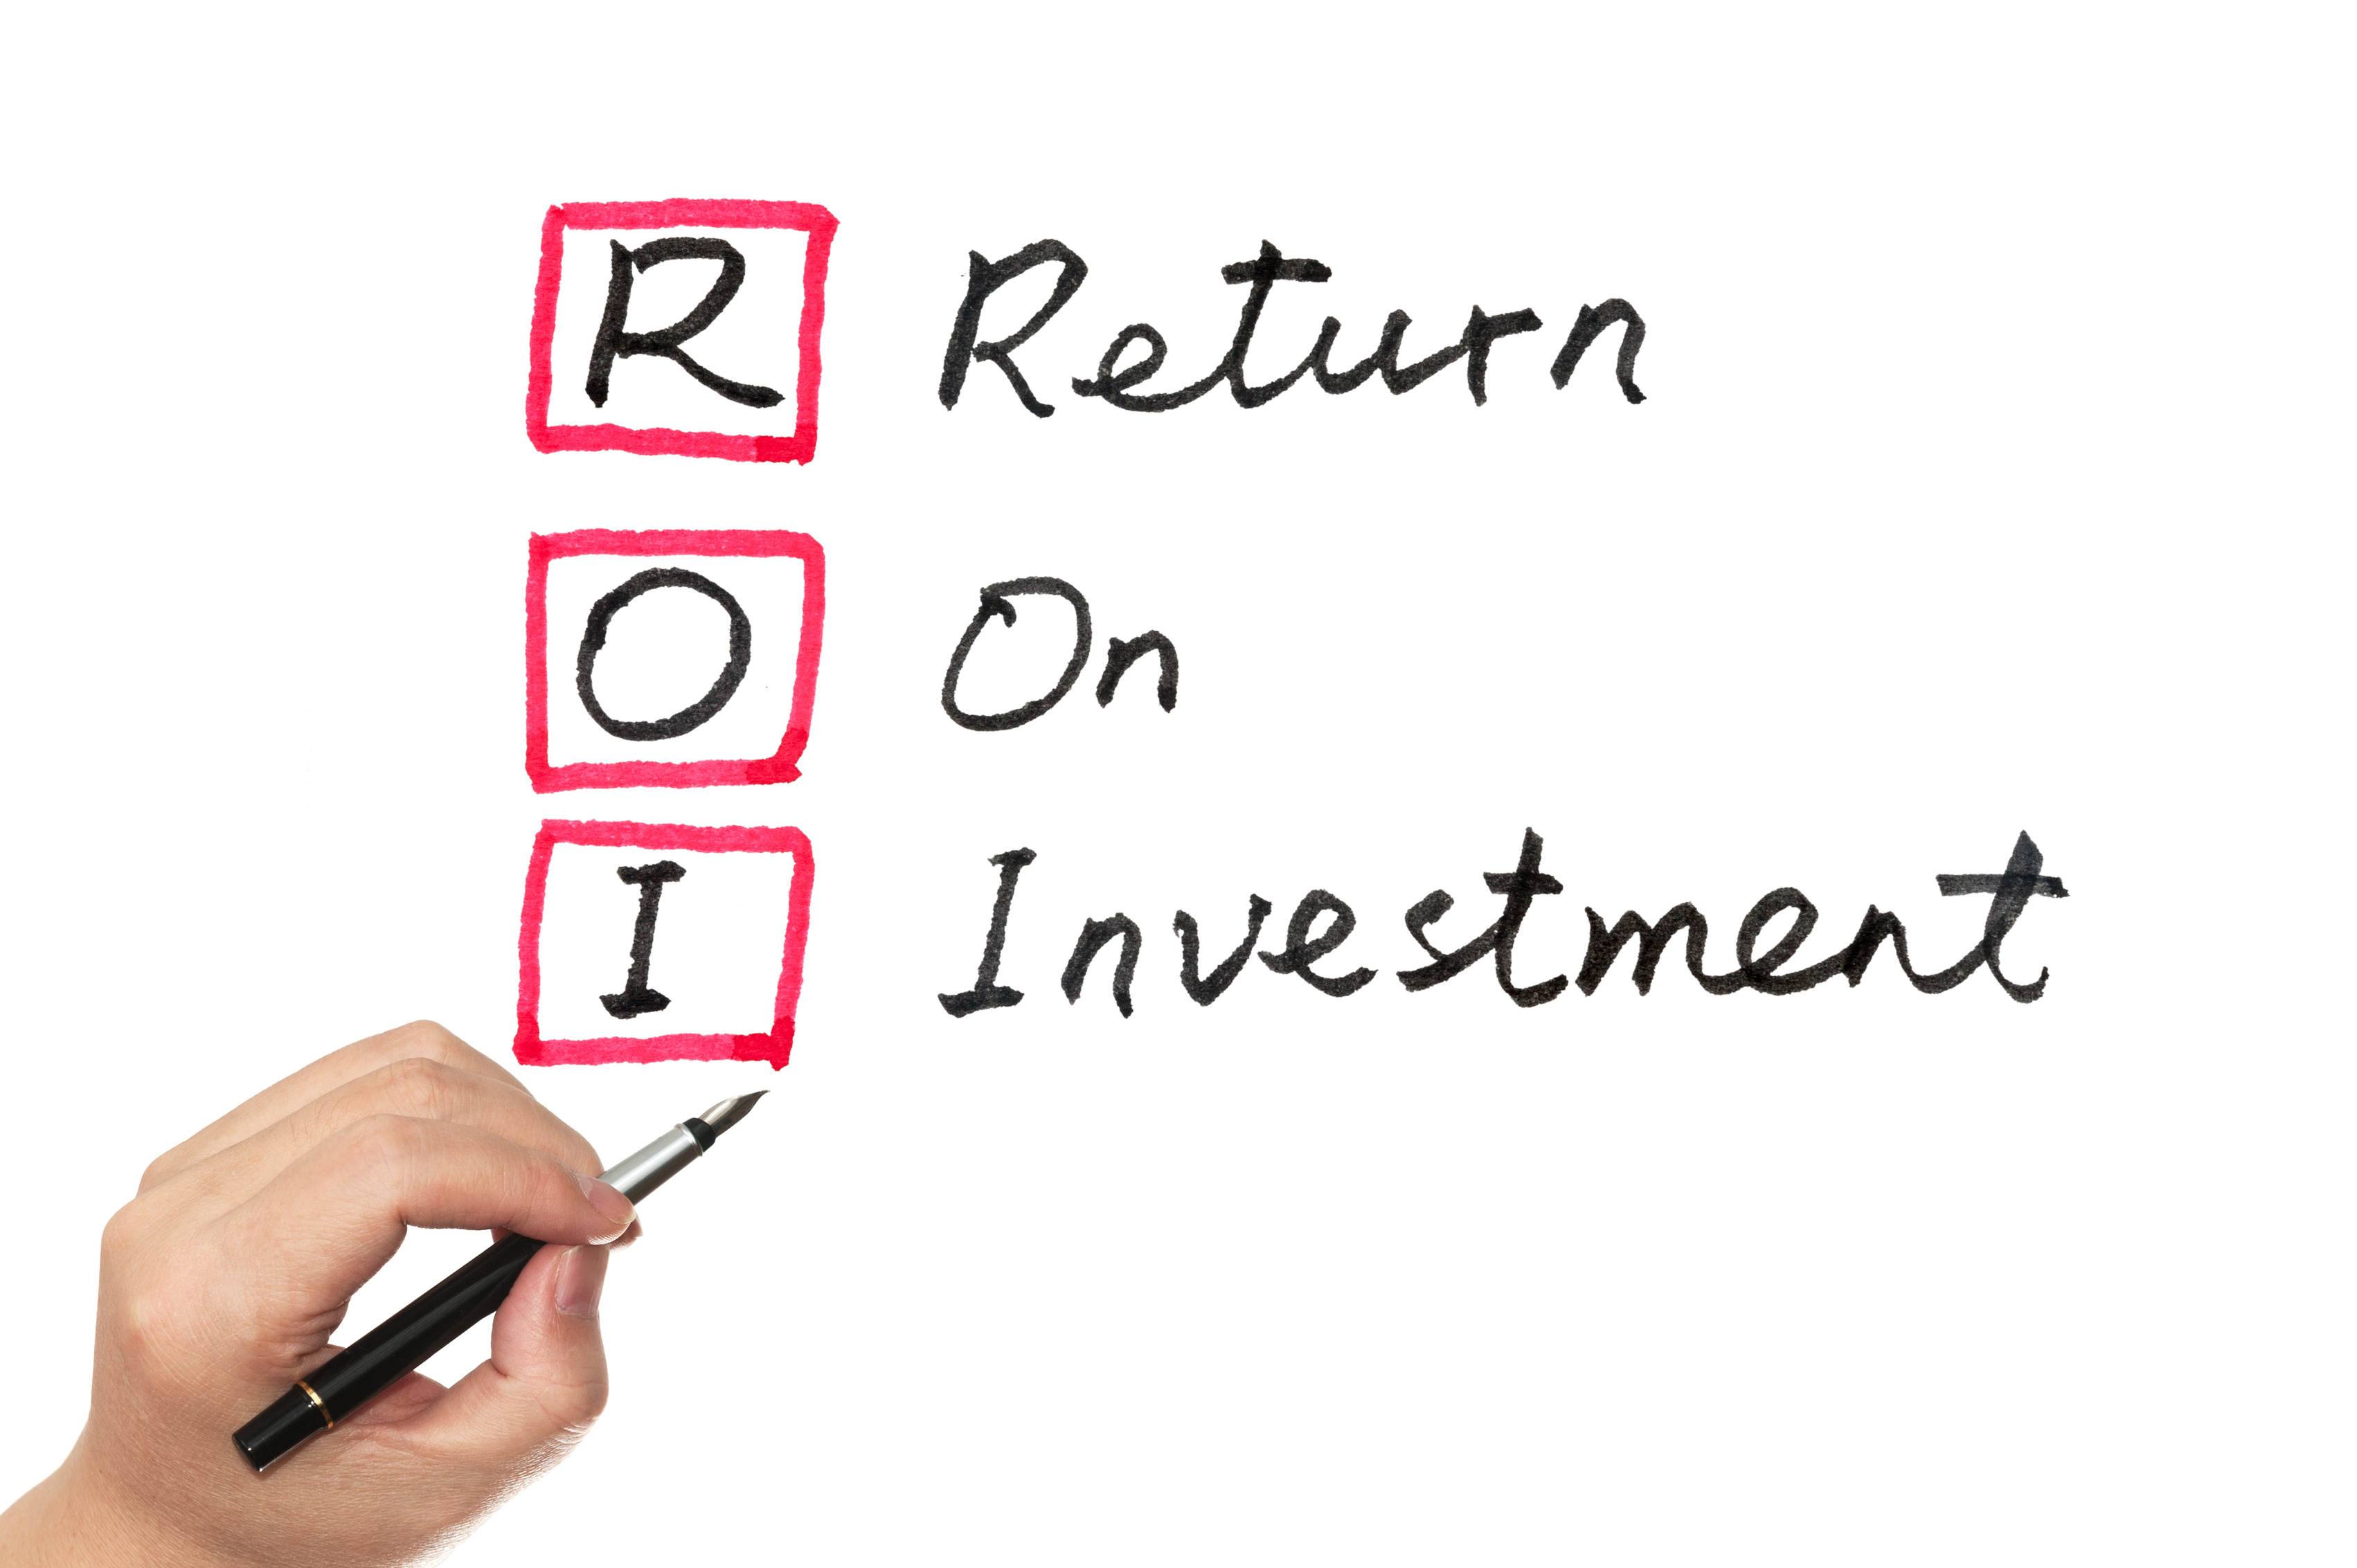 ROI (return on investment) words written on white board